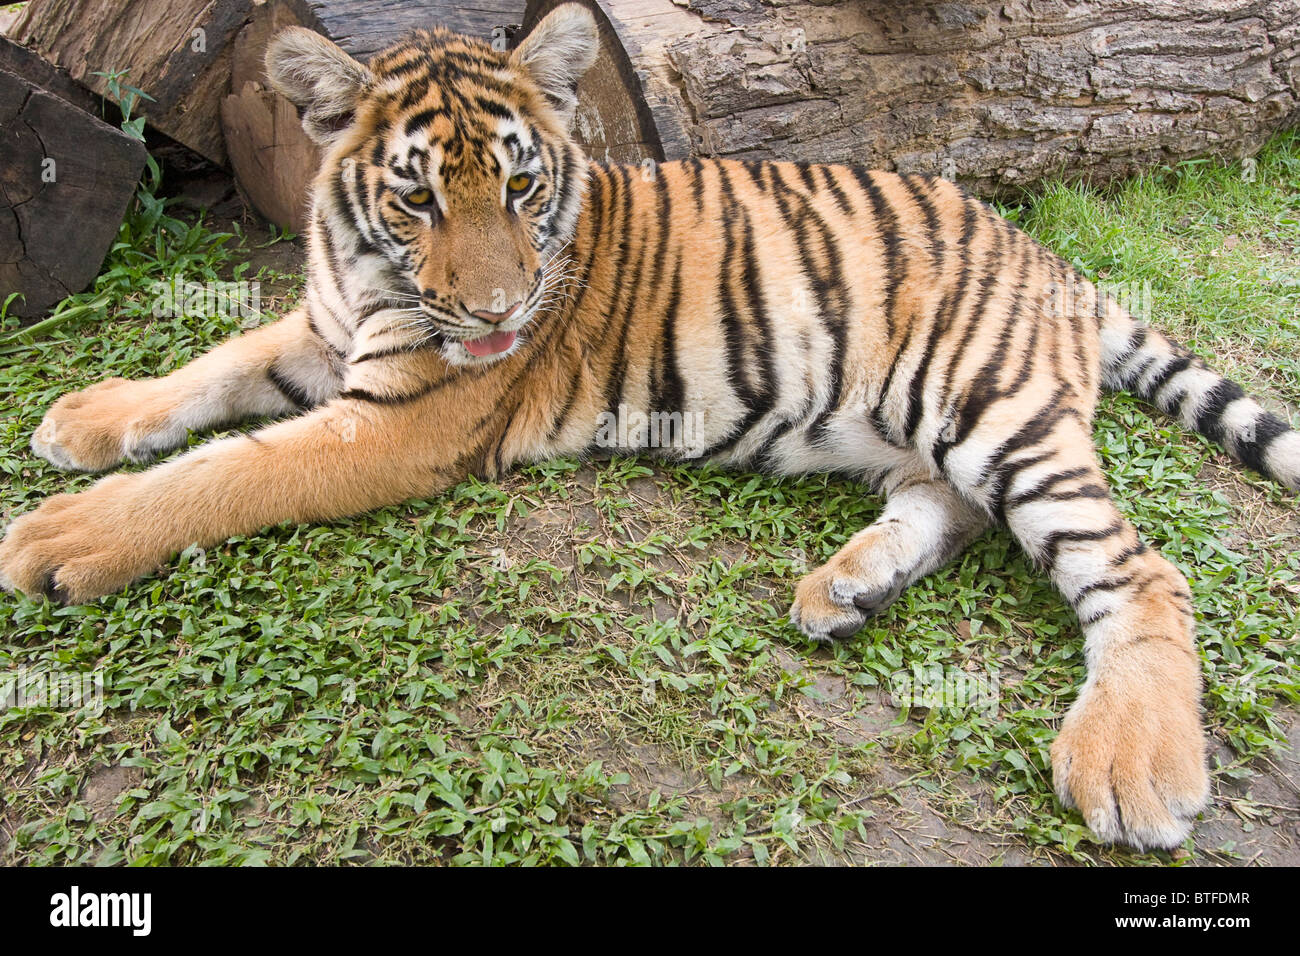 Six-month-old tiger cub. These are Indochinese tigers, called Corbett's tiger, a subspecies found in Southeast - Stock Image